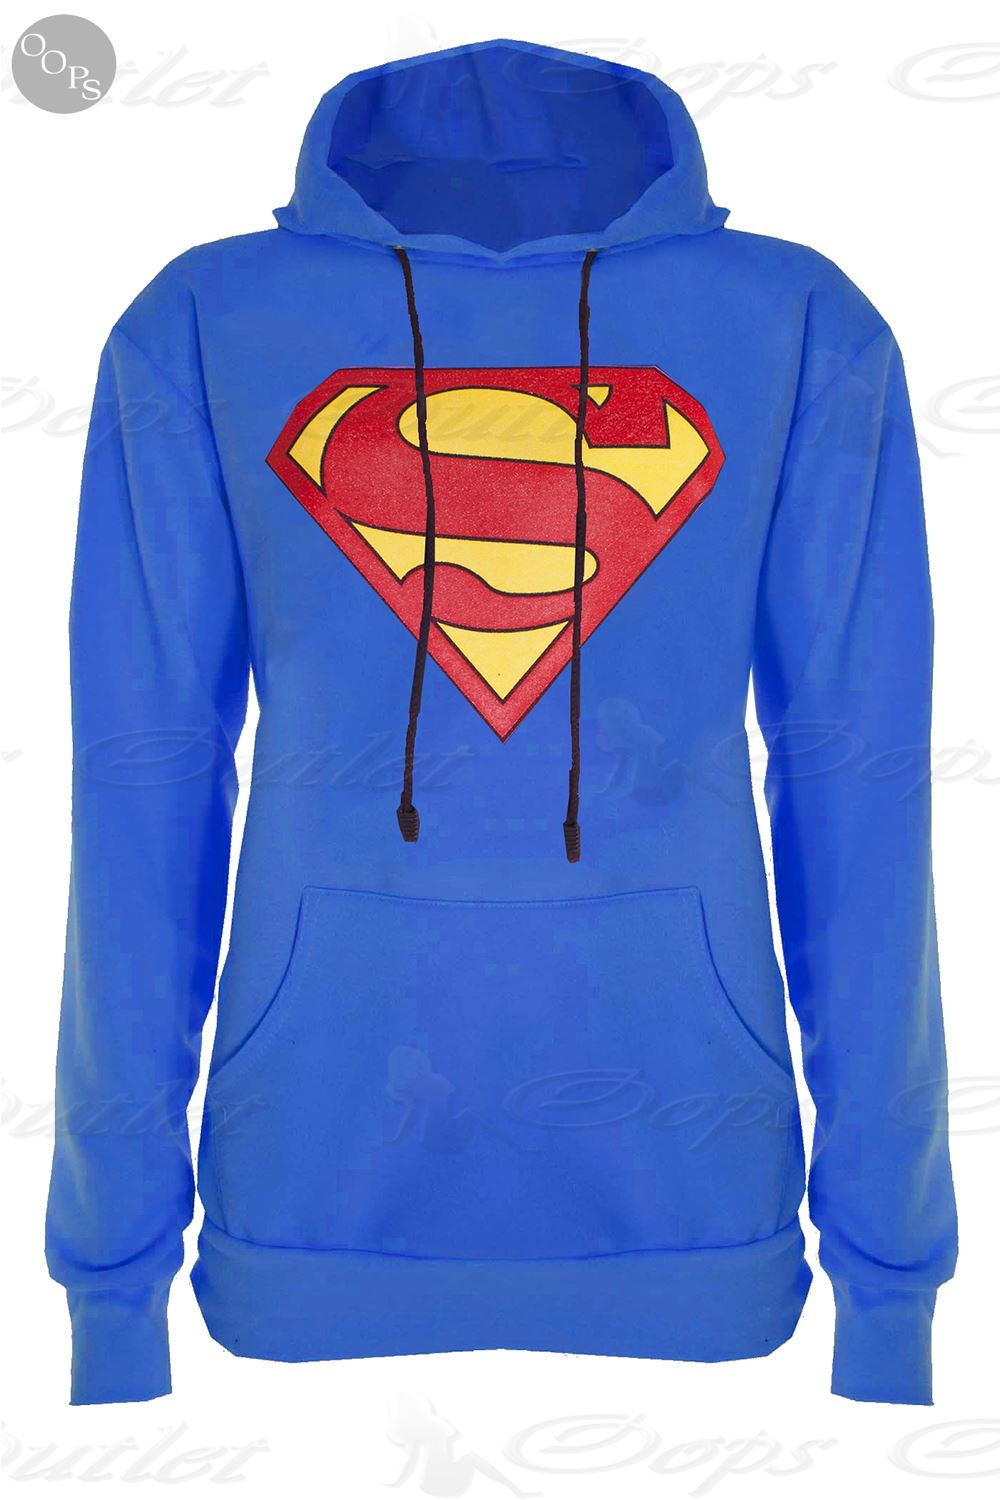 Shop All Fashion Premium Brands Women Men Kids Shoes Jewelry & Watches Bags & Accessories Premium Beauty Savings. Superman Hoodies. Clothing. Character Shop. Men's Character Shop. Superman - Shield Hoodie. Product Image. Price $ 94 - $ Product Title.